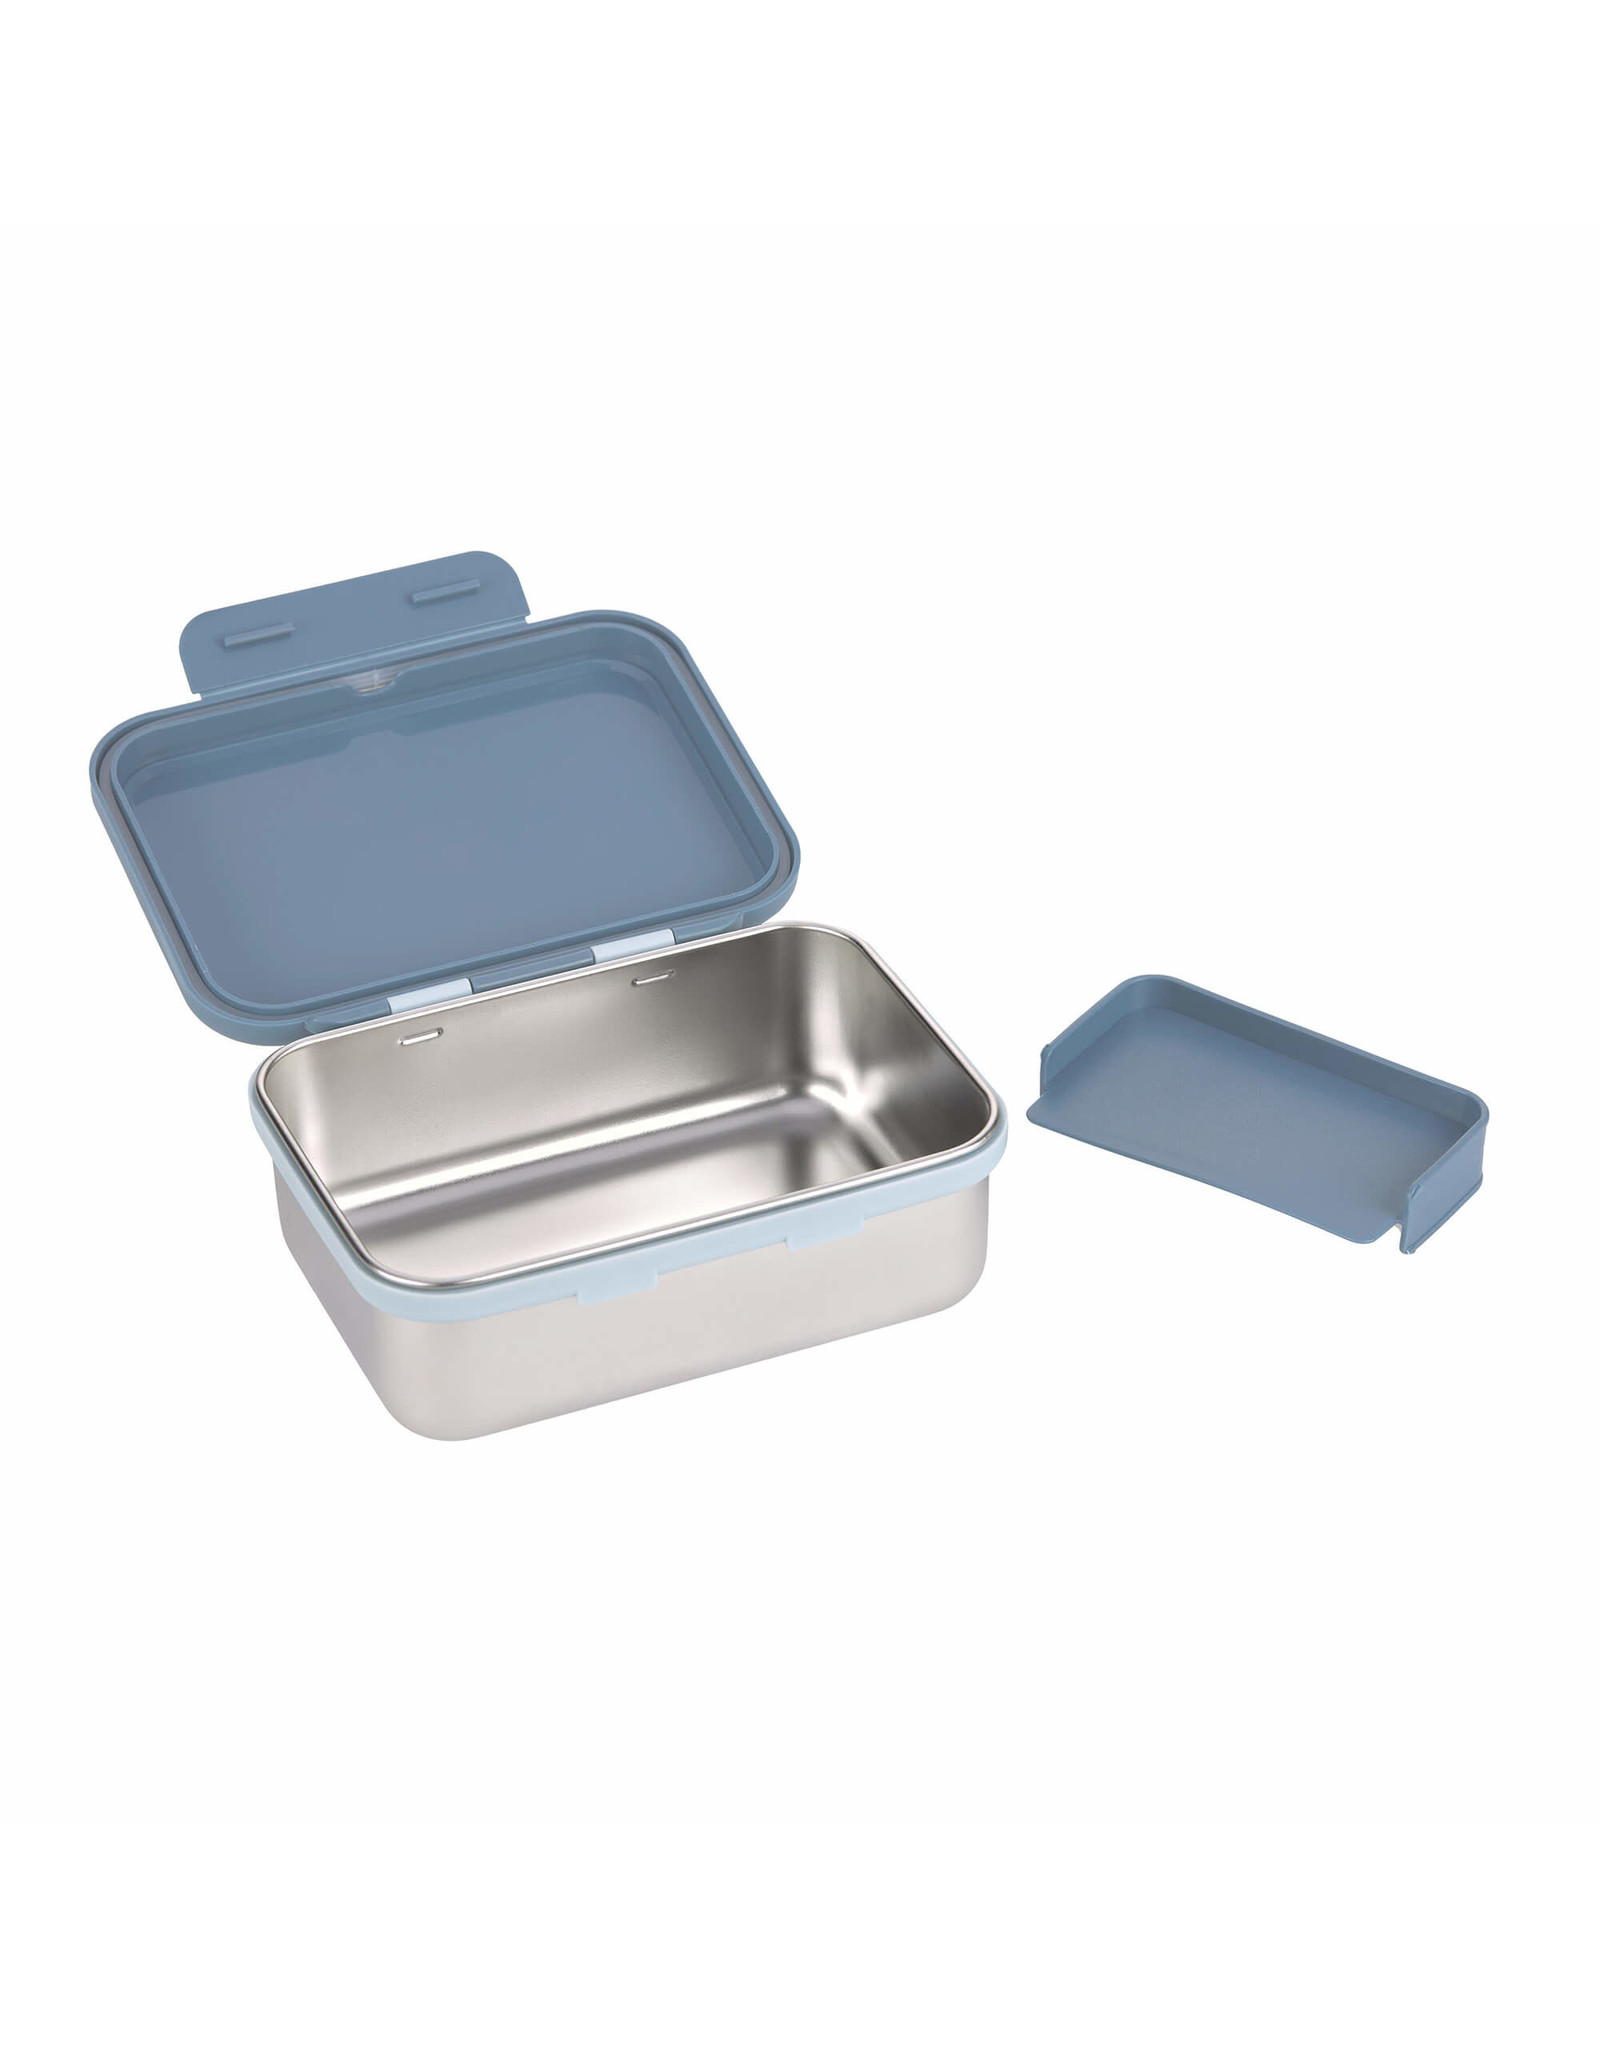 Lassig Lassig Lunchbox Stainless Steel Tractor